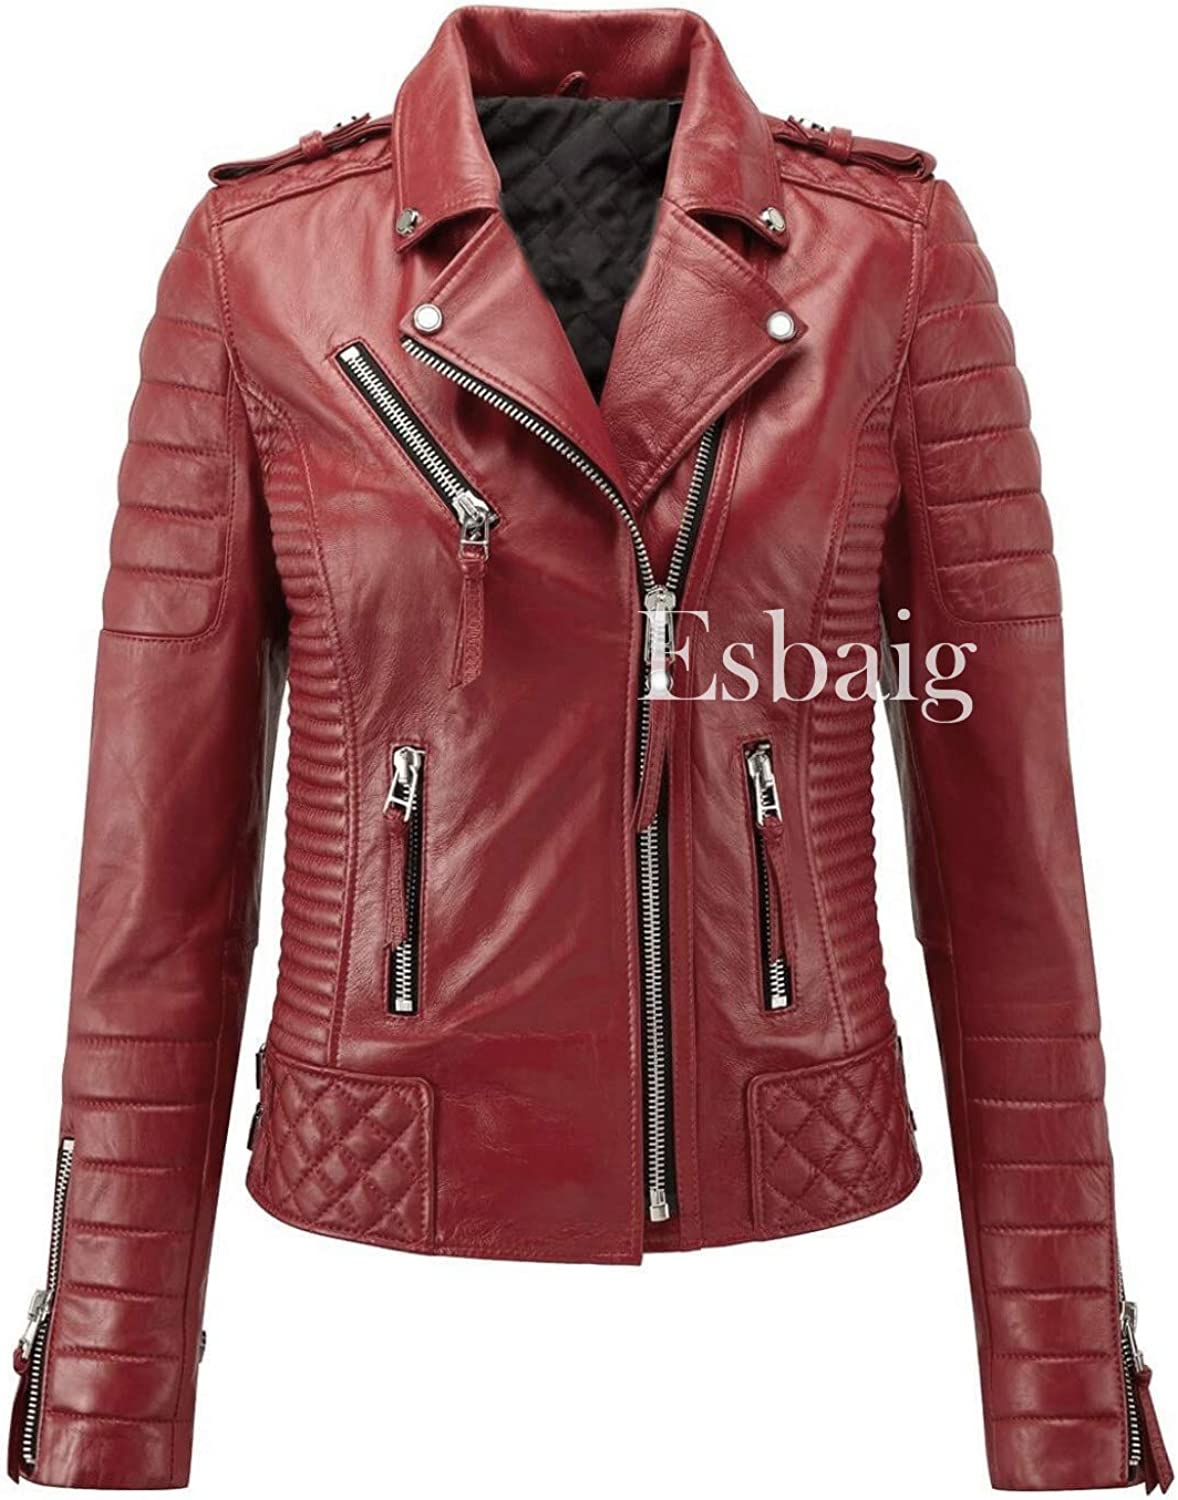 ESBAIG Womens Leather Jackets Stylish Motorcycle Bomber Biker Real Lambskin Leather Jacket for Women 545